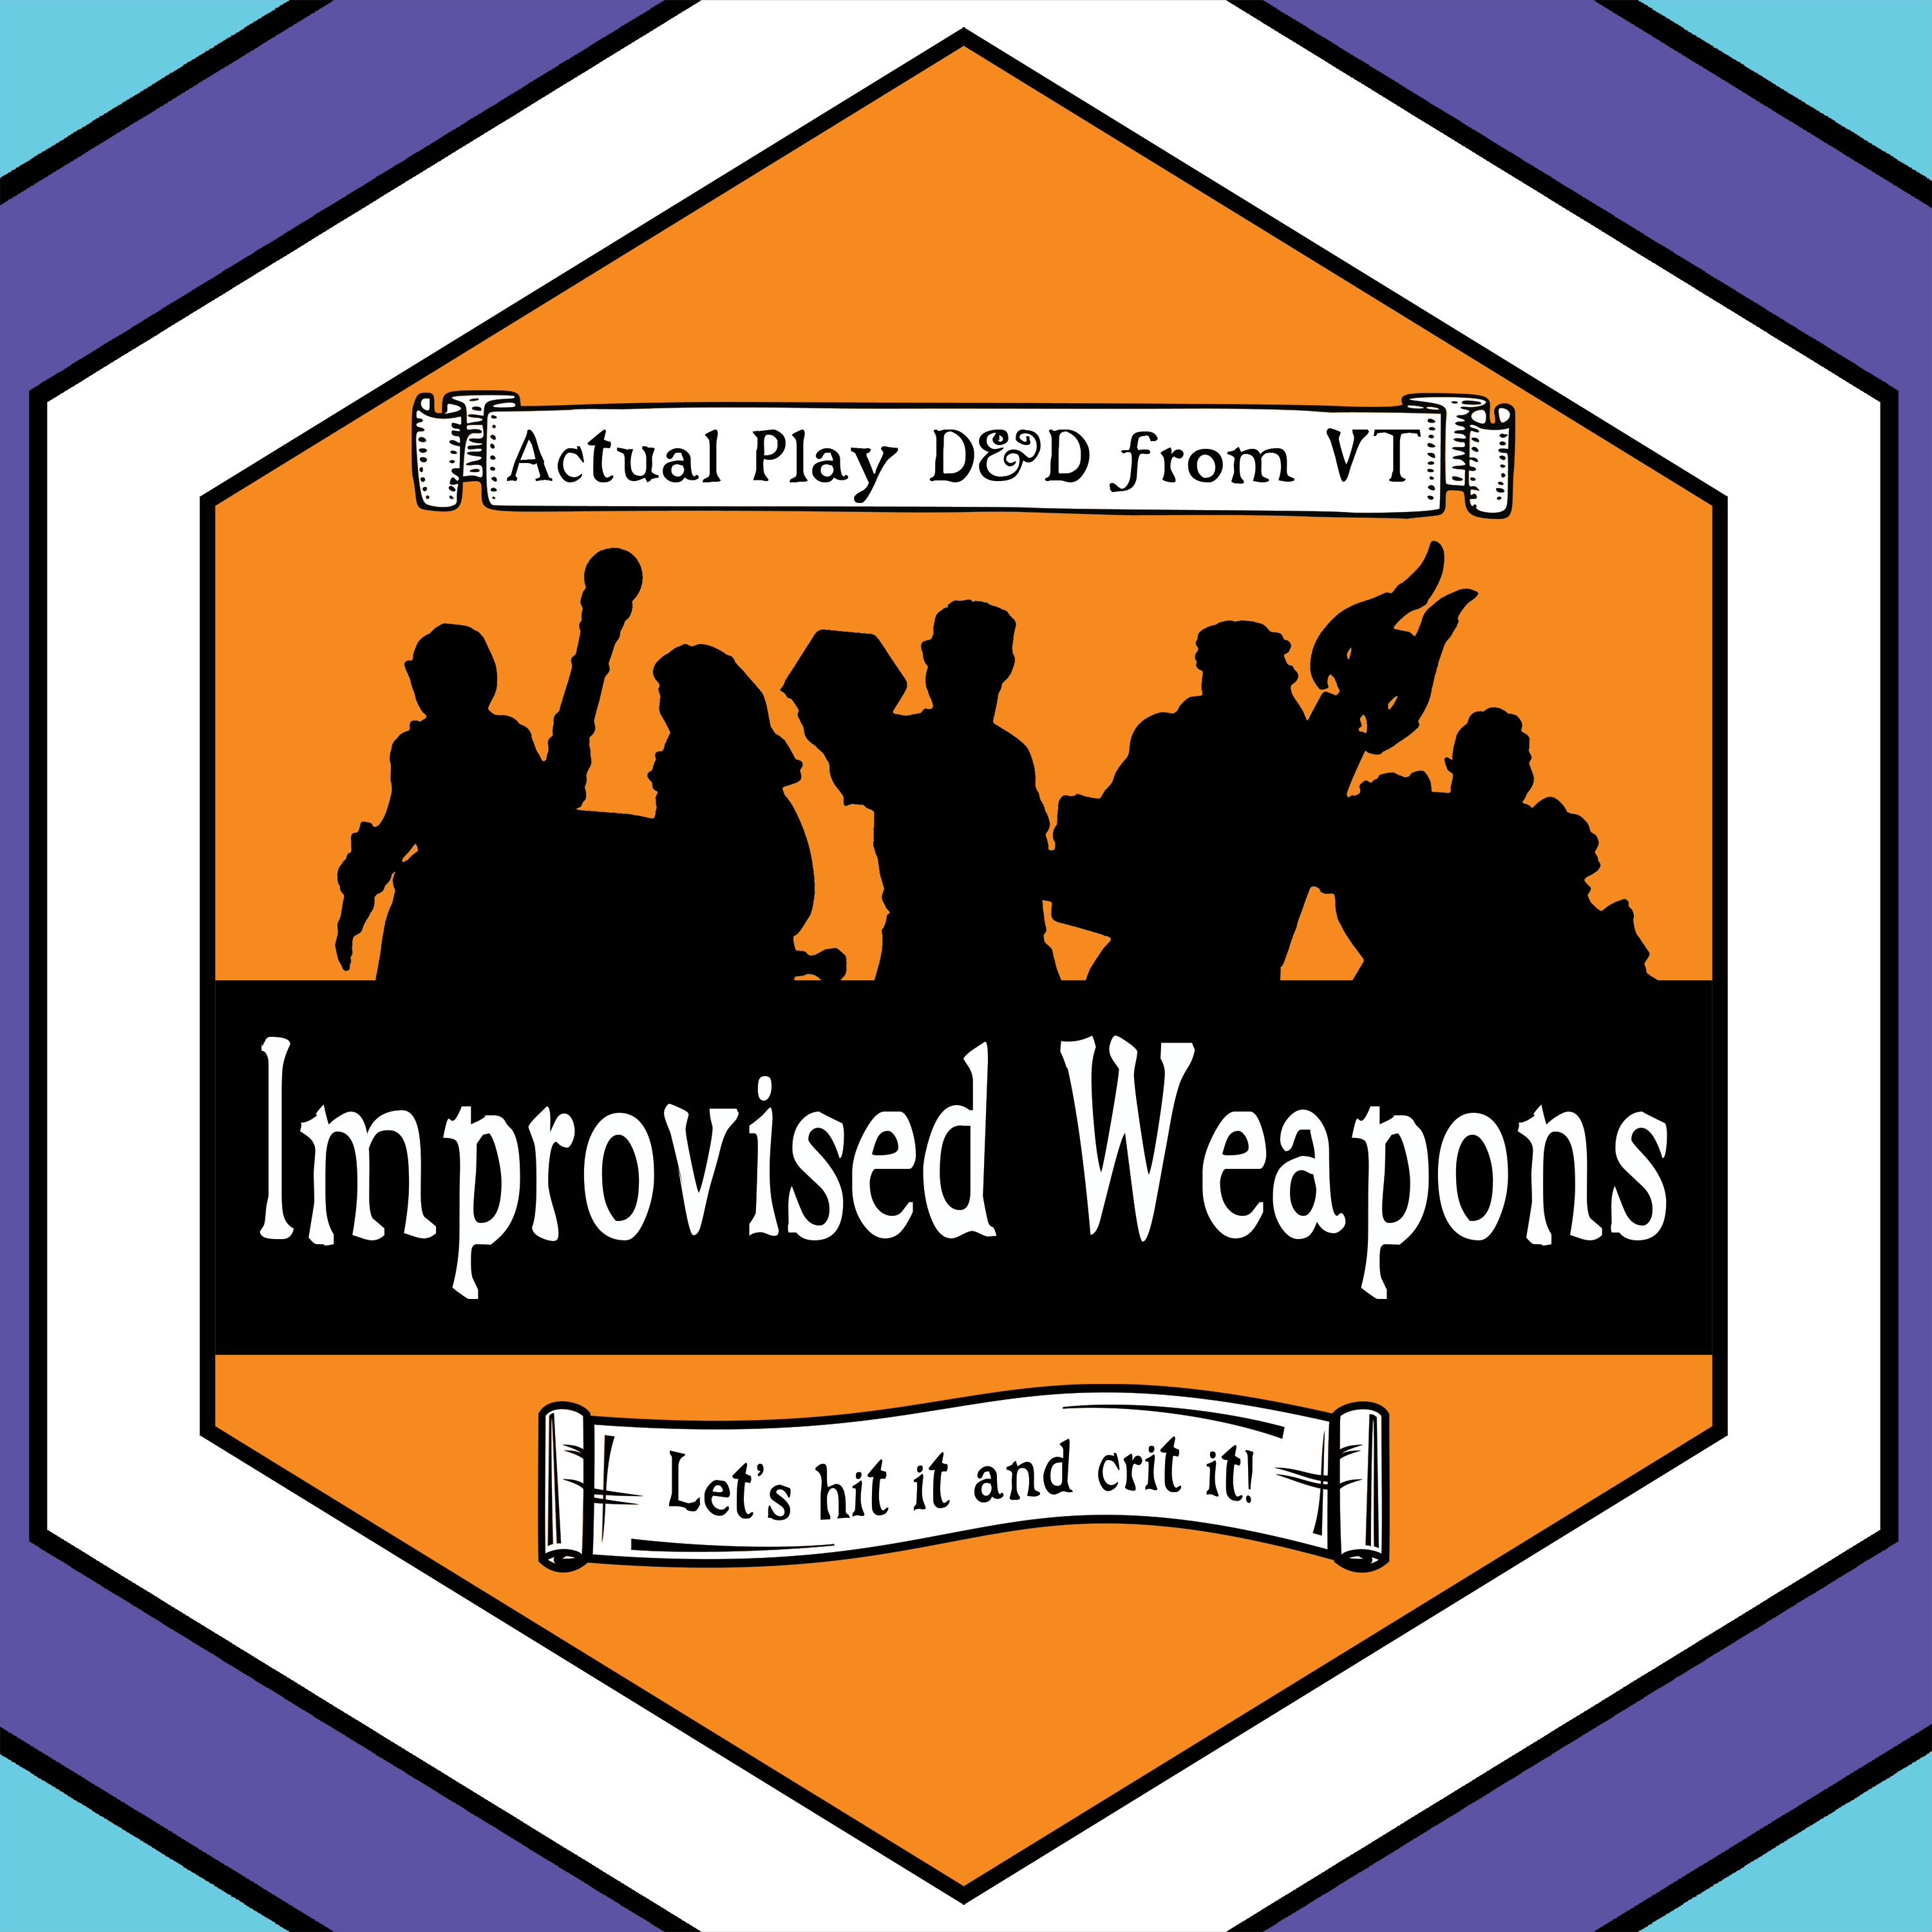 Improvised Weapons